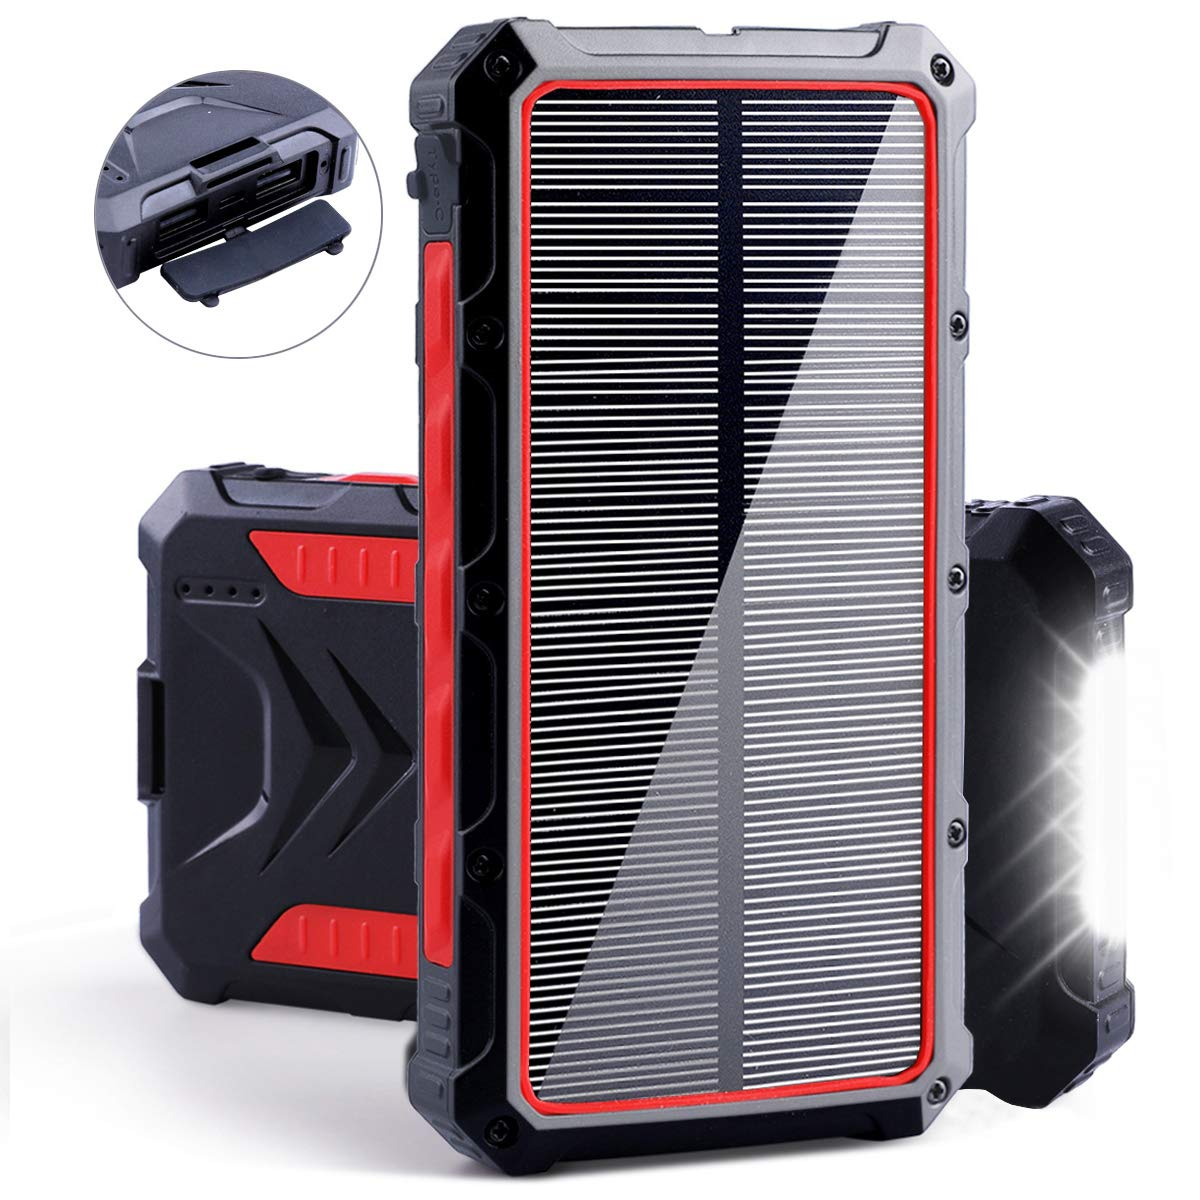 Solar Power Bank, Benfiss 20000mAh Portable Solar Charger with Dual USB 3A Output Port/LED Light and External Battery Pack, Solar Phone Charger Fast Charging for Smartphone and More (Red) by Benfiss